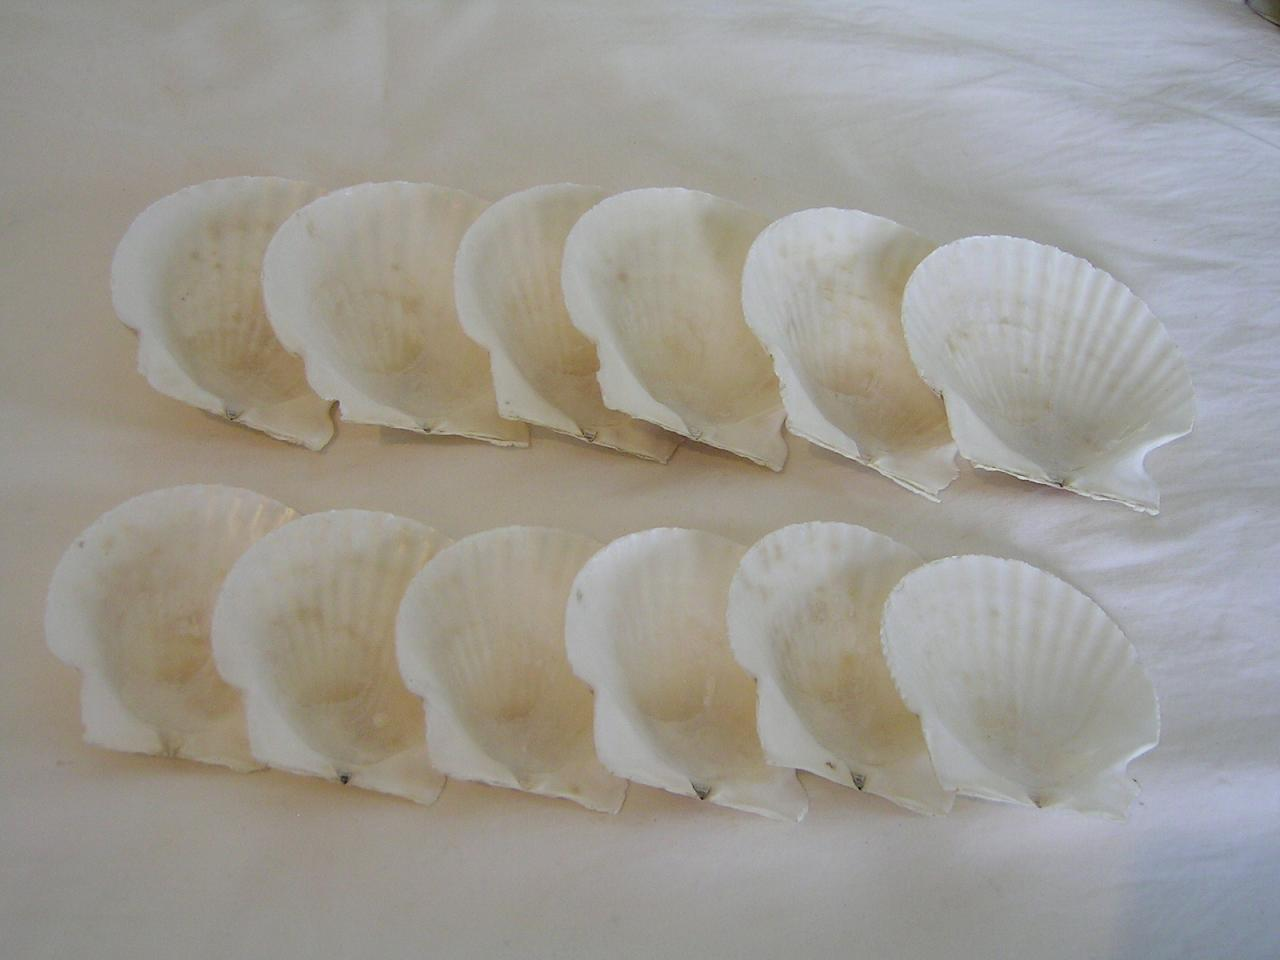 Shaped Scallop Shell (En forme de Coquille Saint-Jacques)